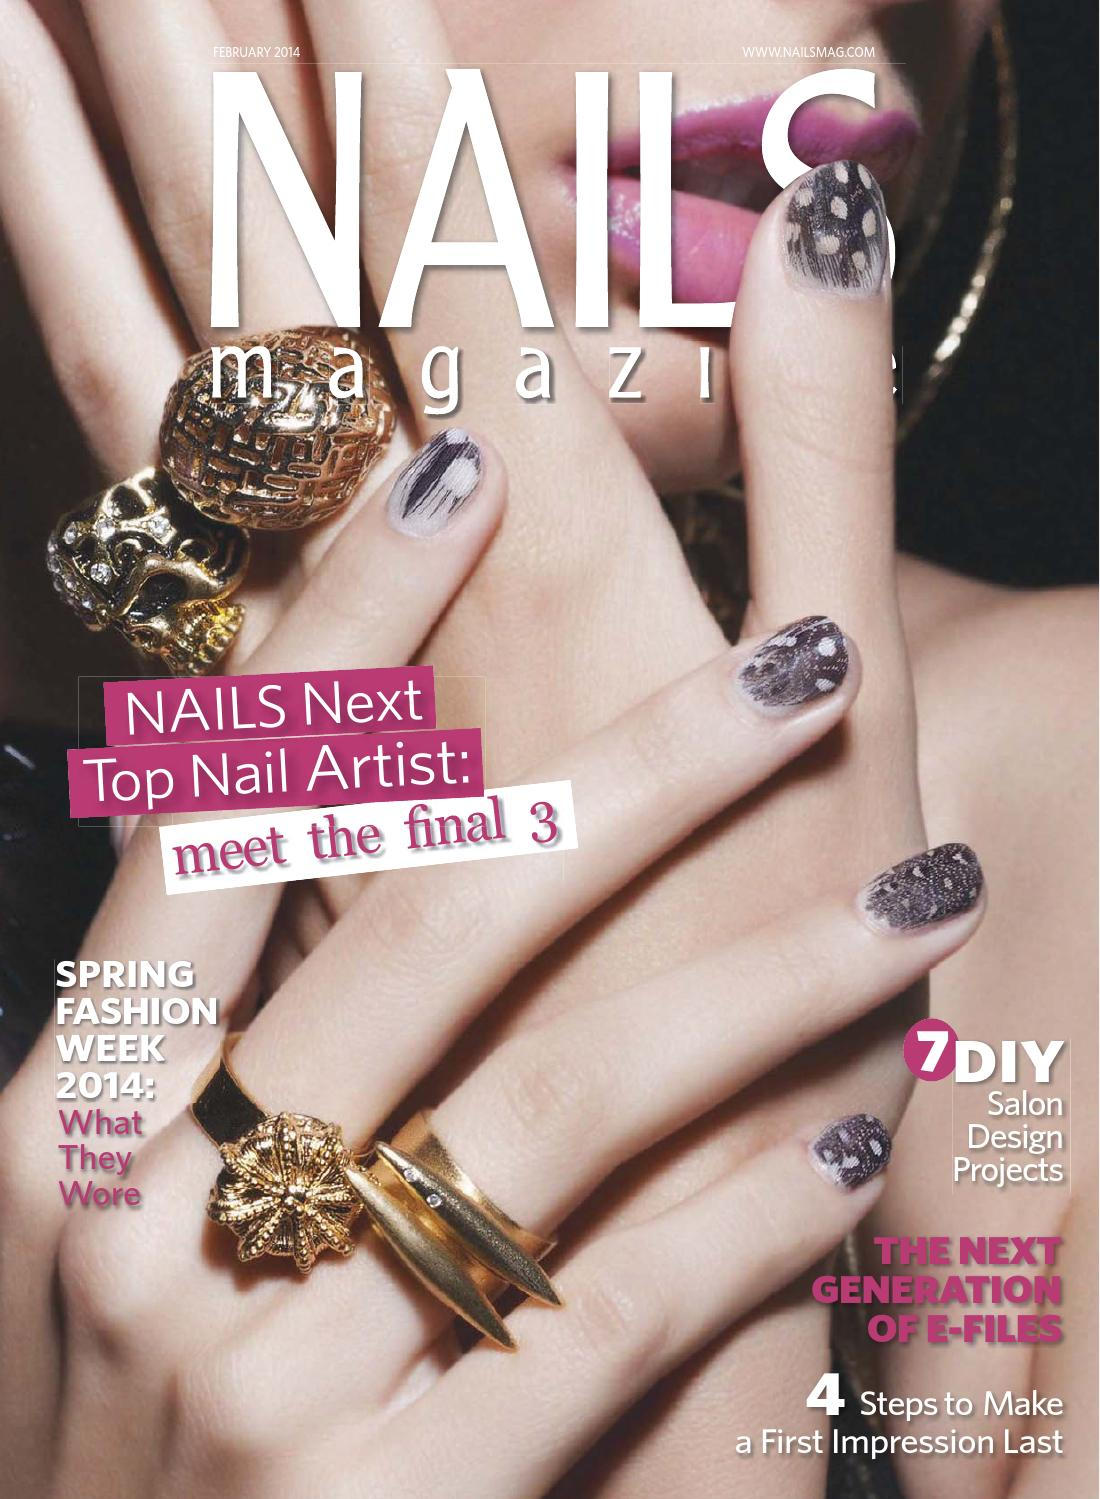 Nails magazine 2014 02 by Reforma Nails CZ - issuu